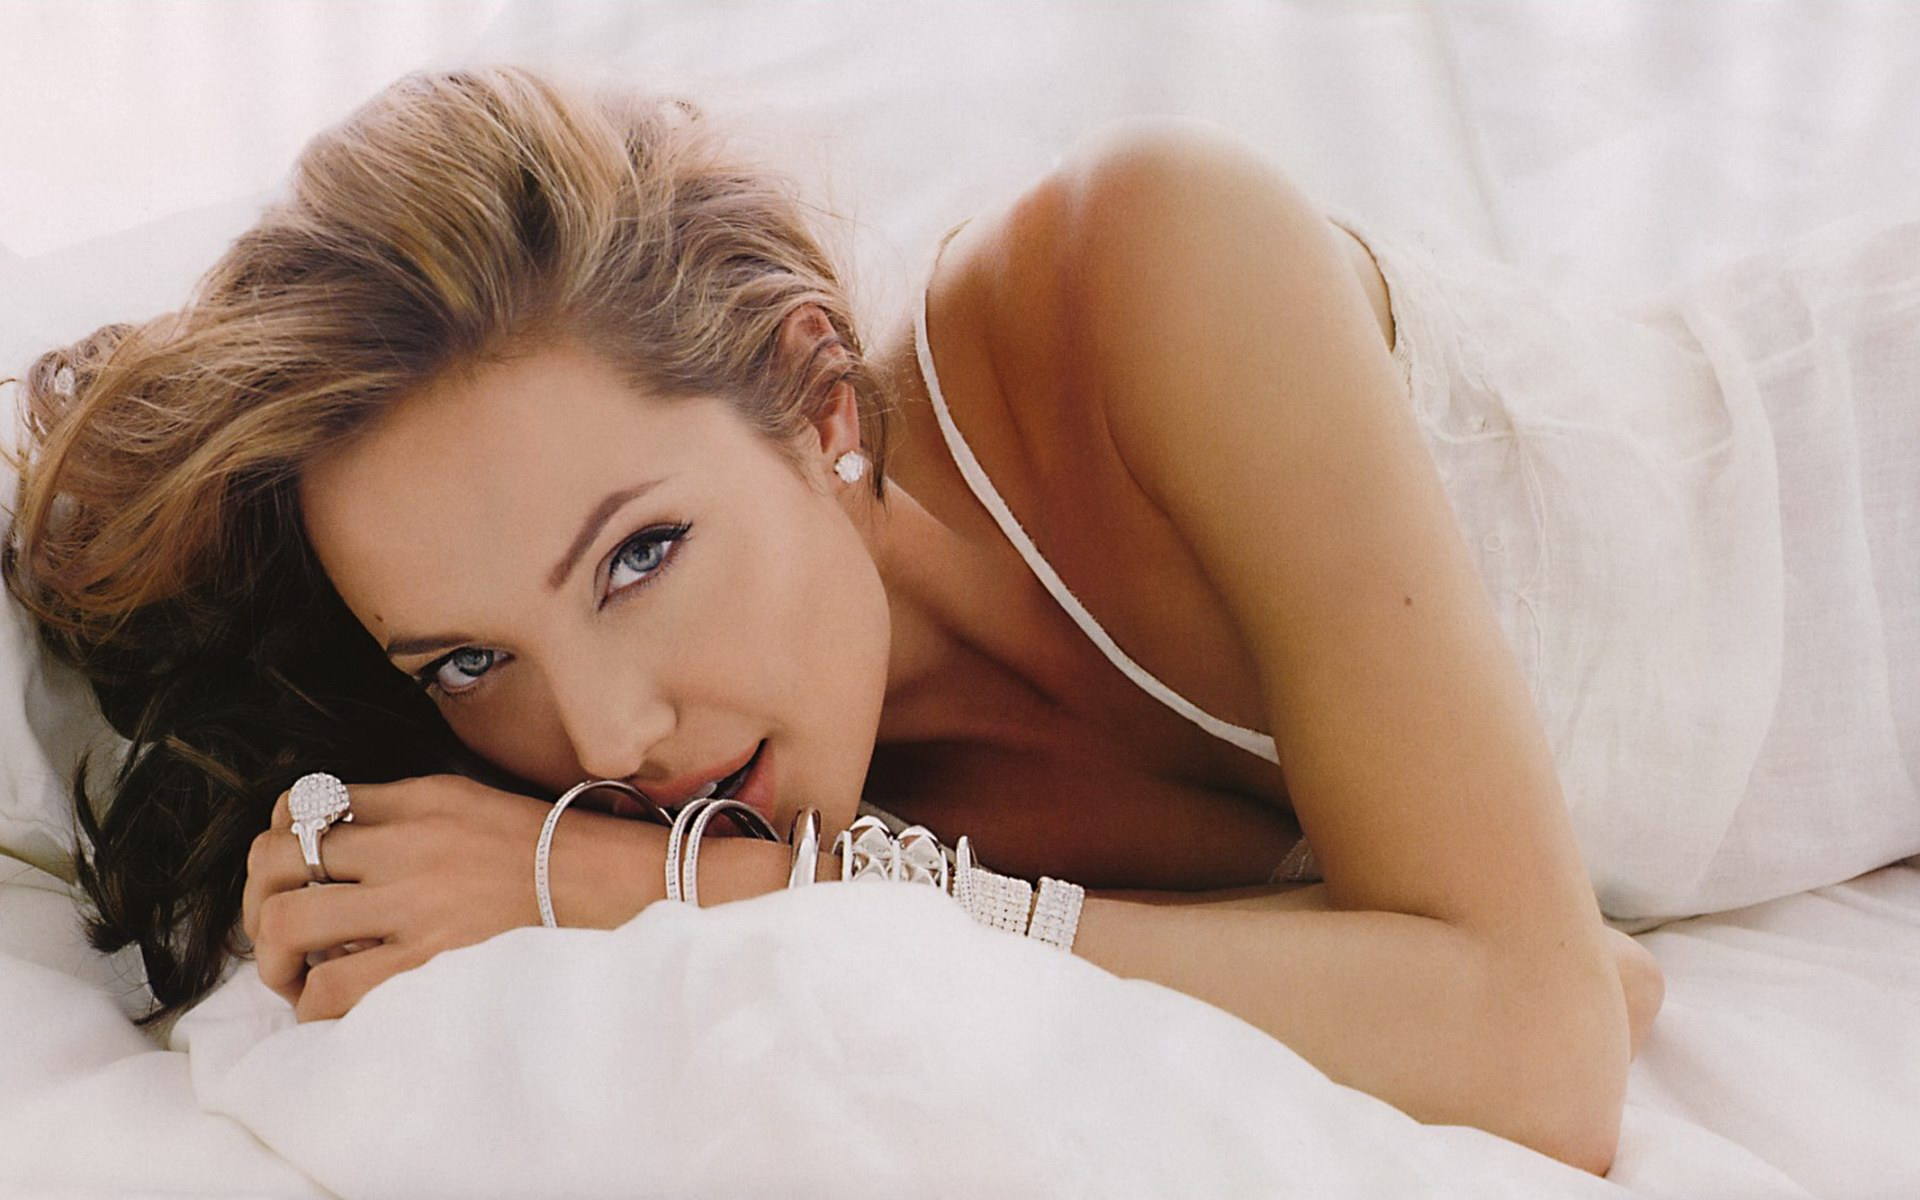 Angelina Jolie Pose Exclusive HD Wallpapers 3833 1920x1200